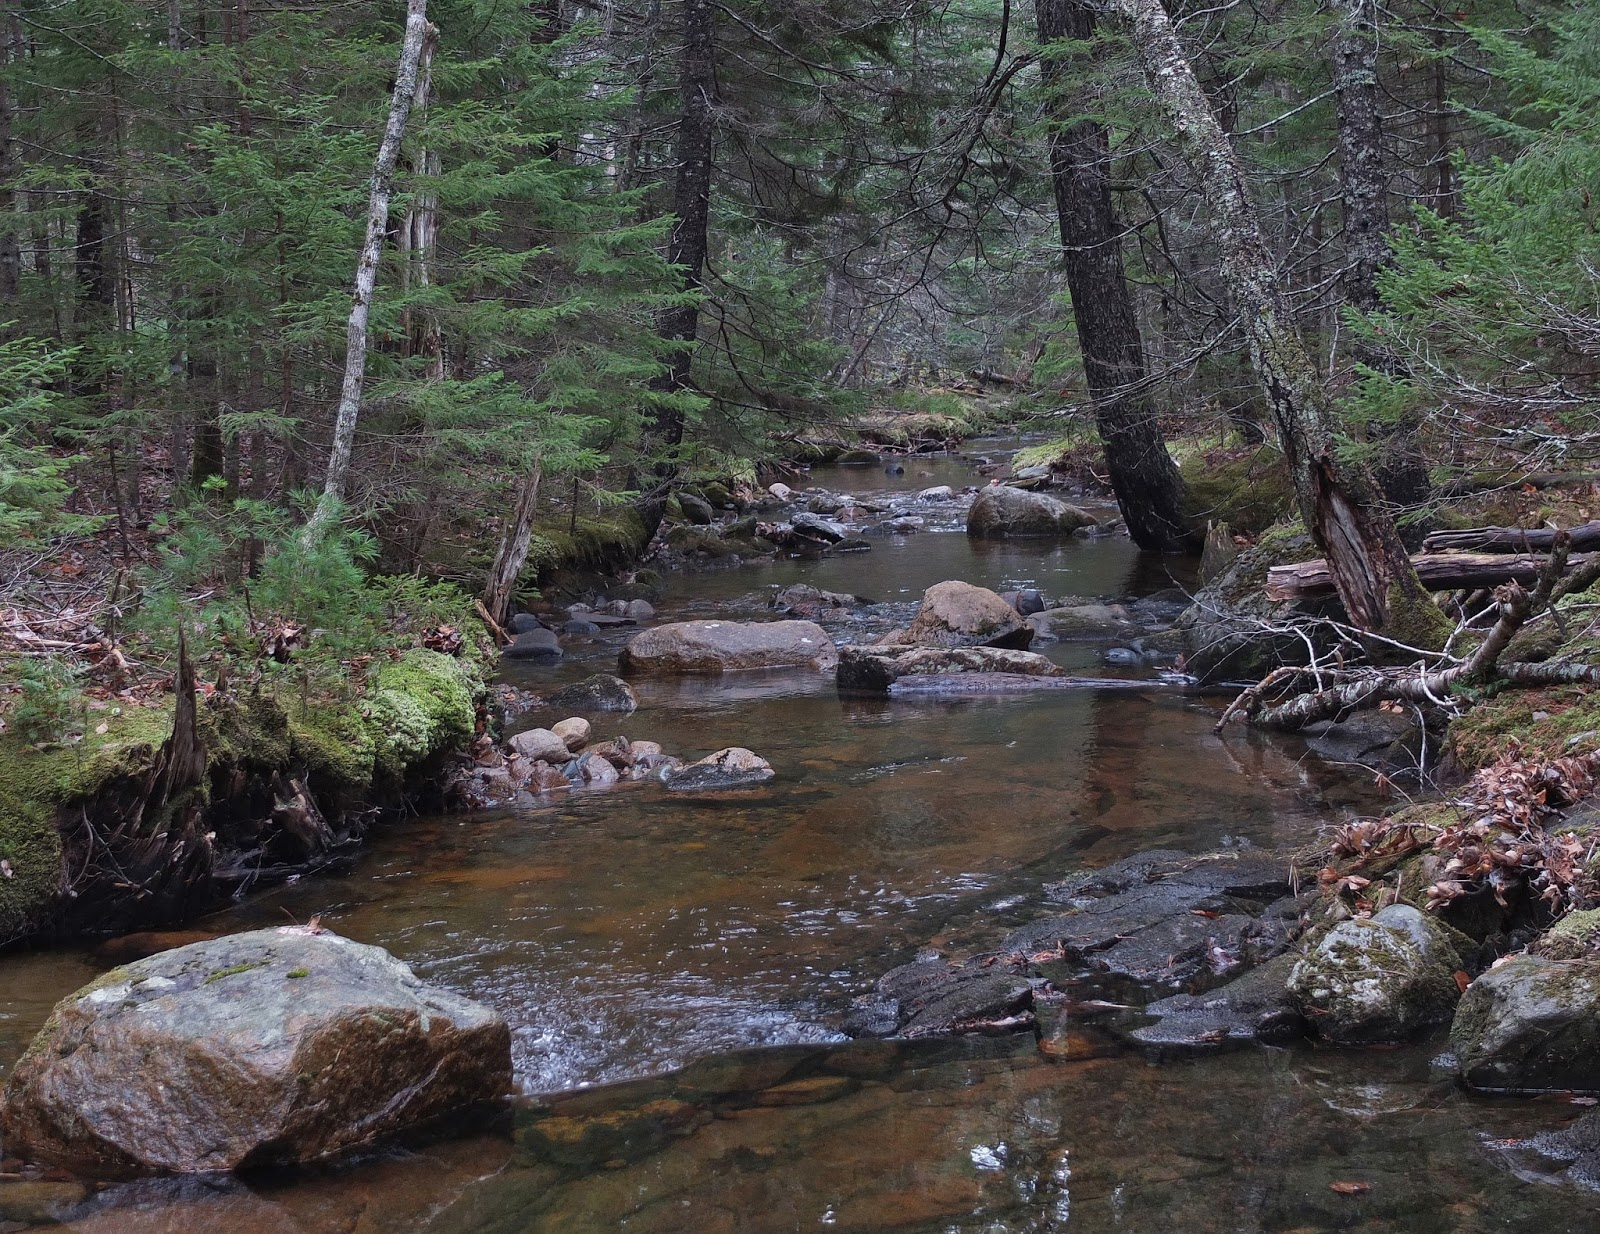 hiking in maine with kelley 11 27 15 eliot mt harbor brook